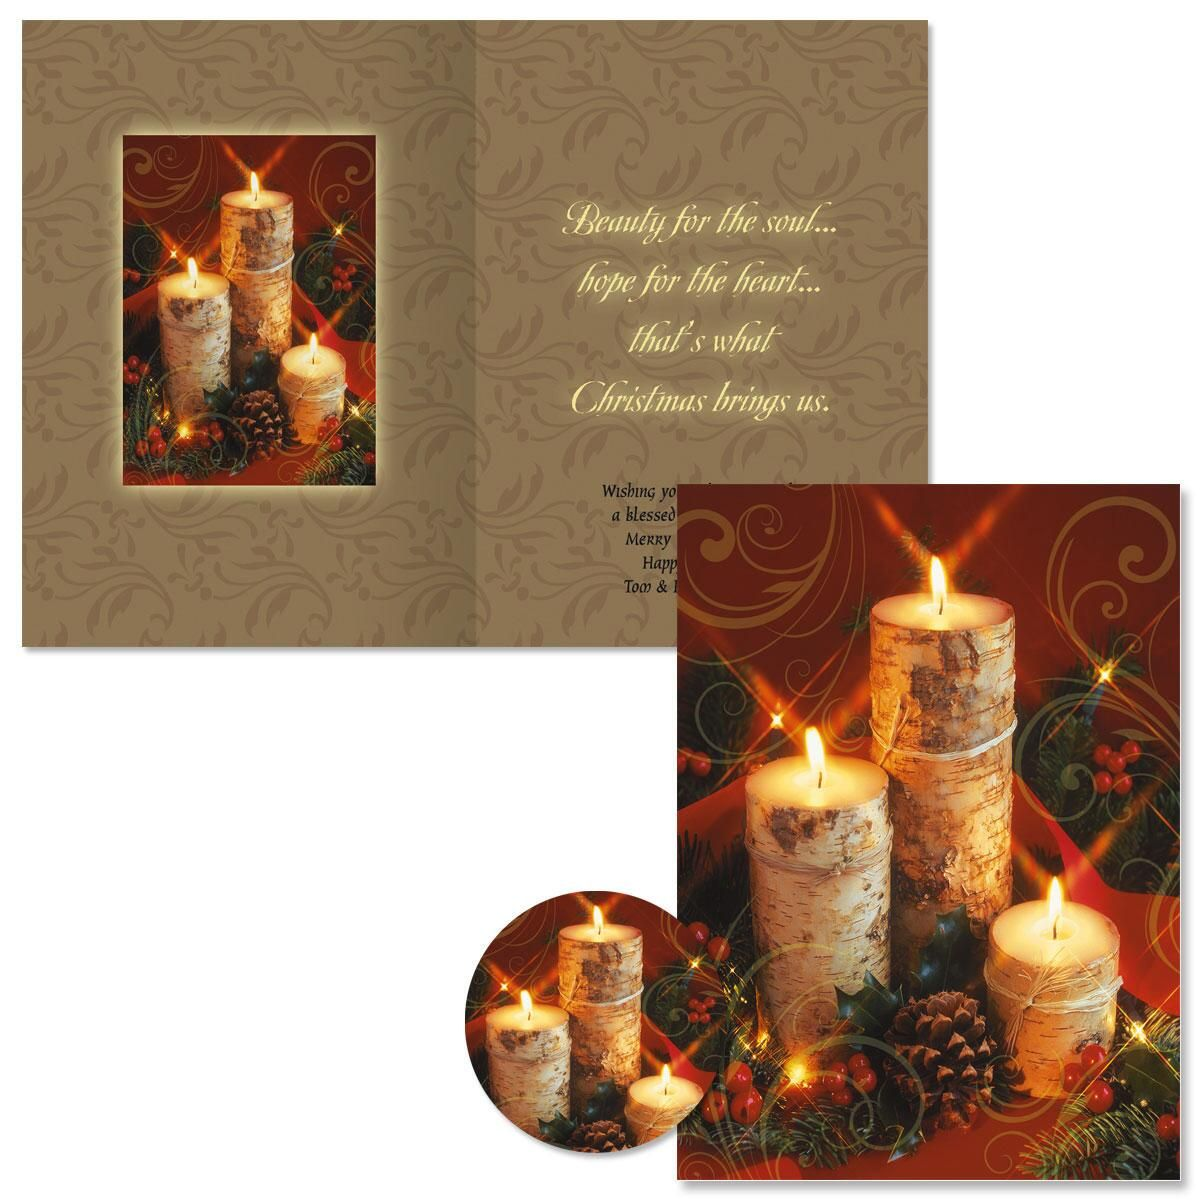 Warm Wishes Christmas Cards -  Nonpersonalized